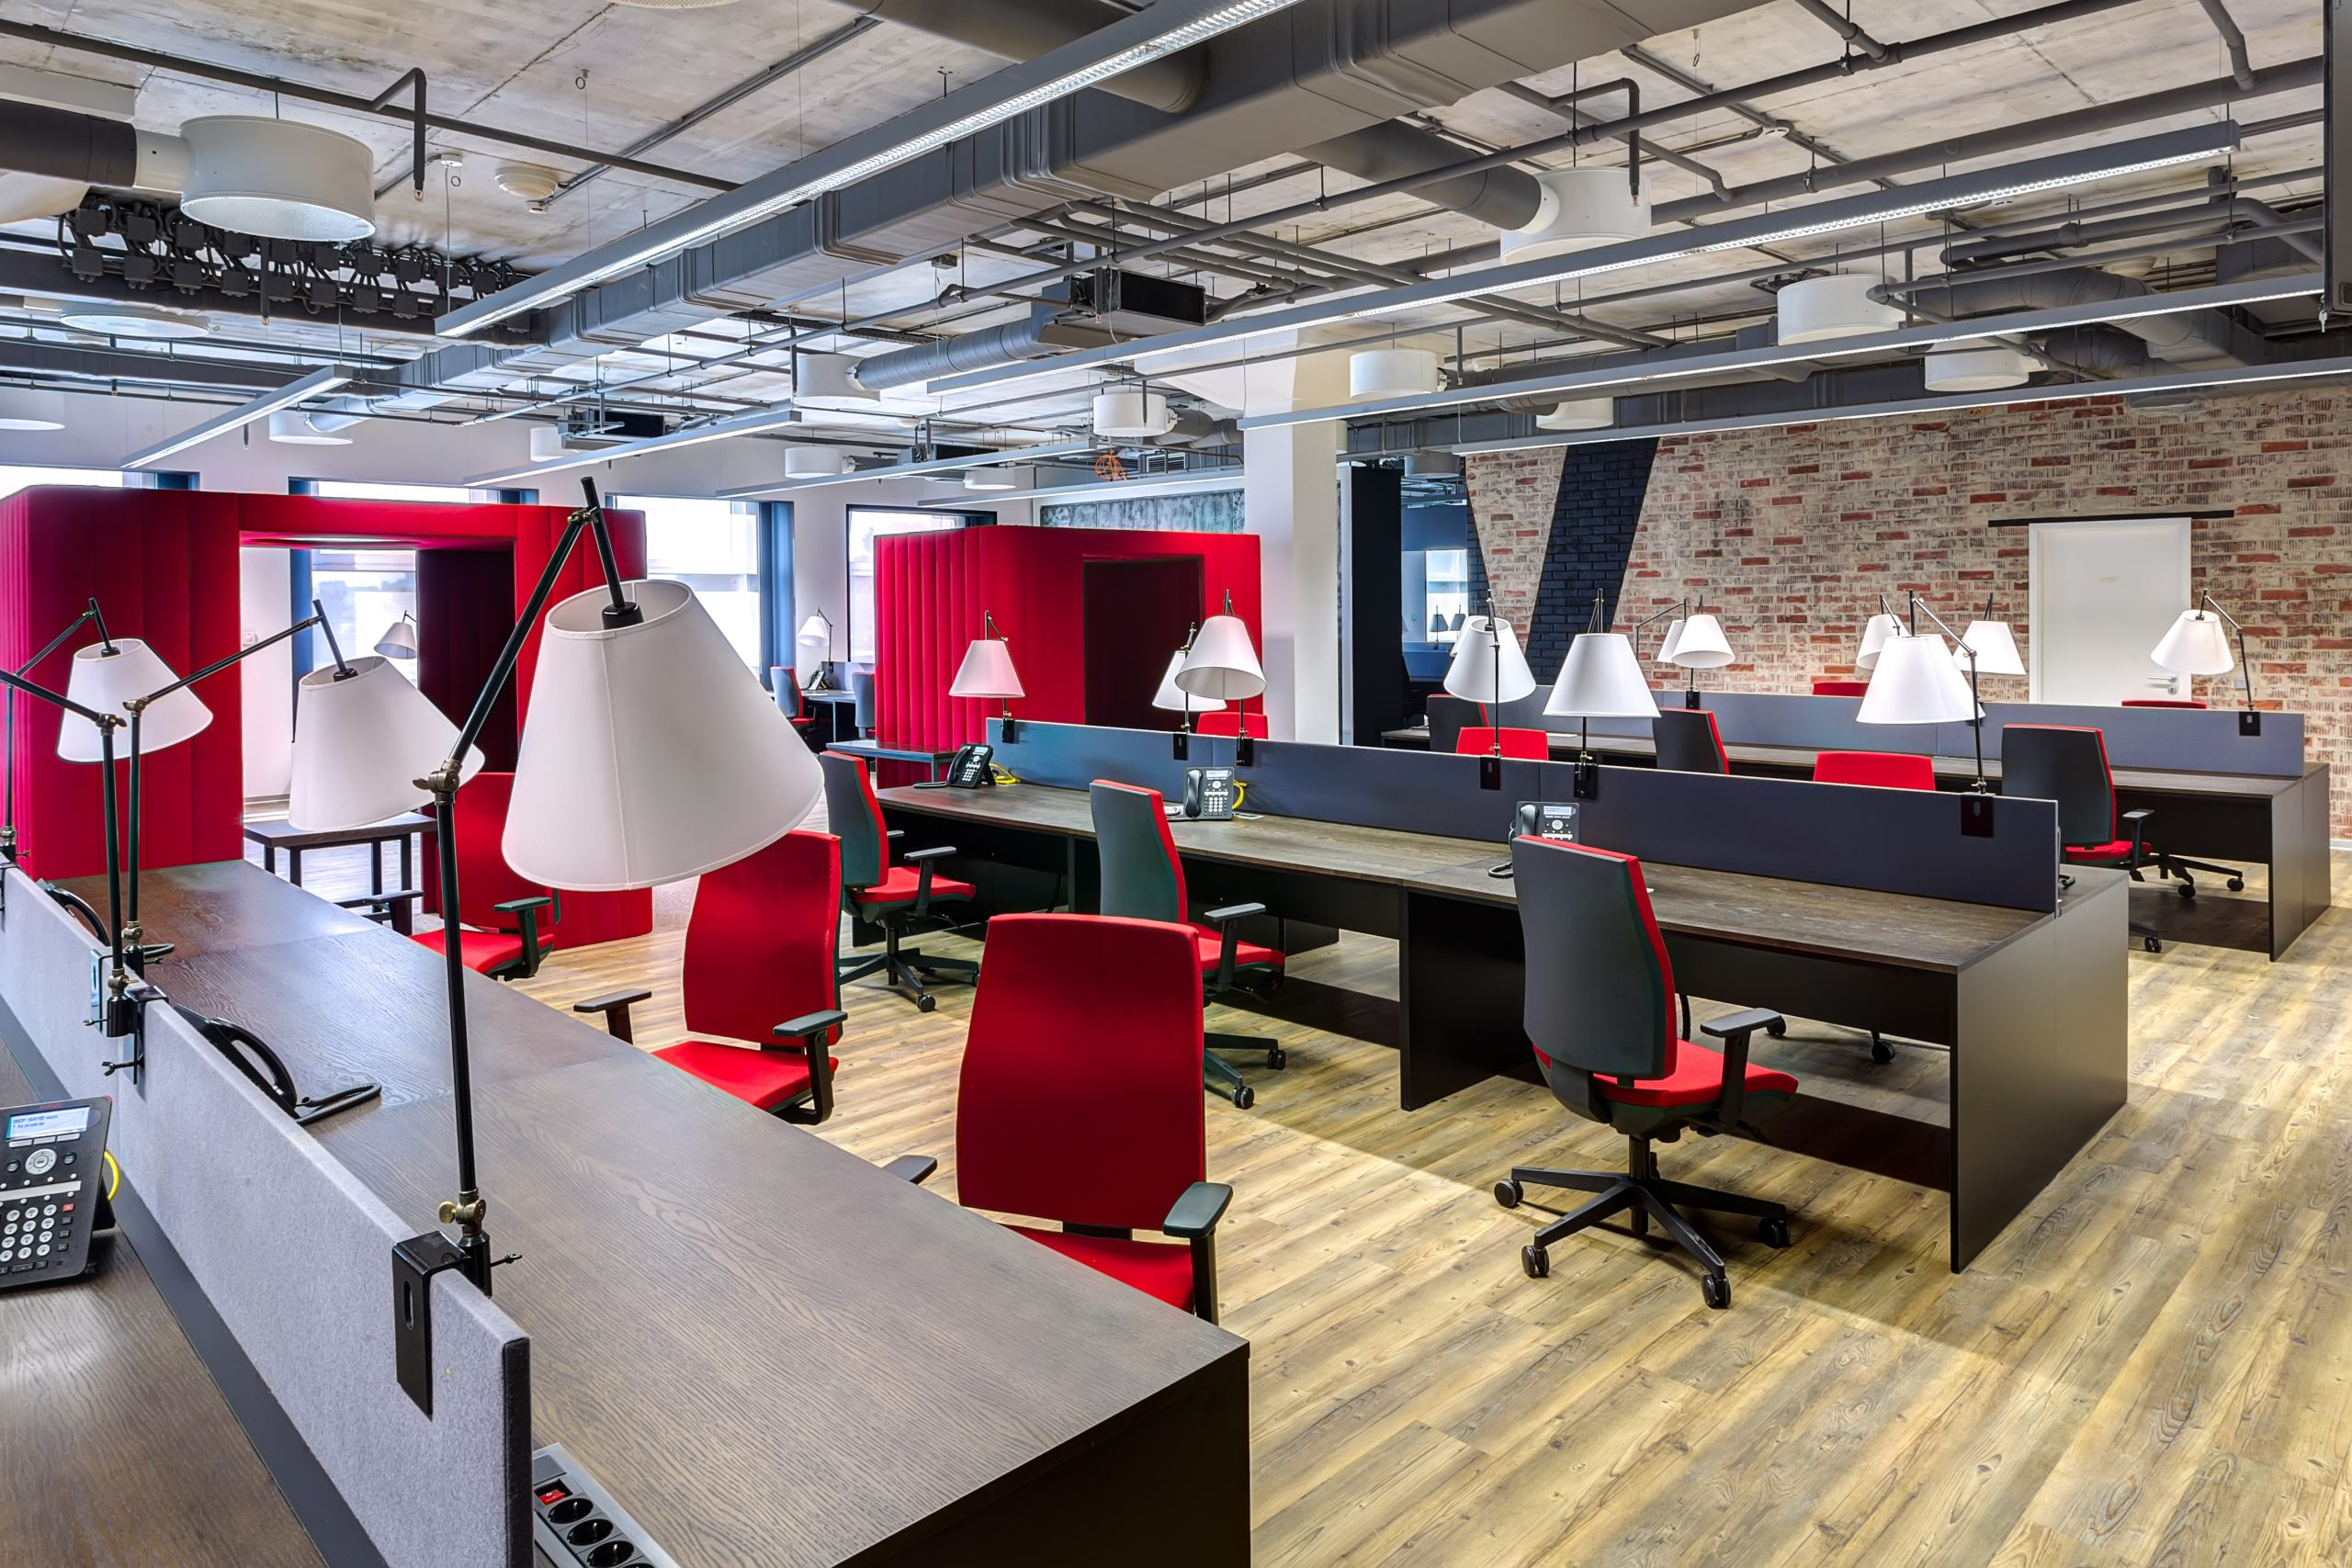 How to know when a small business has outgrown its workspace